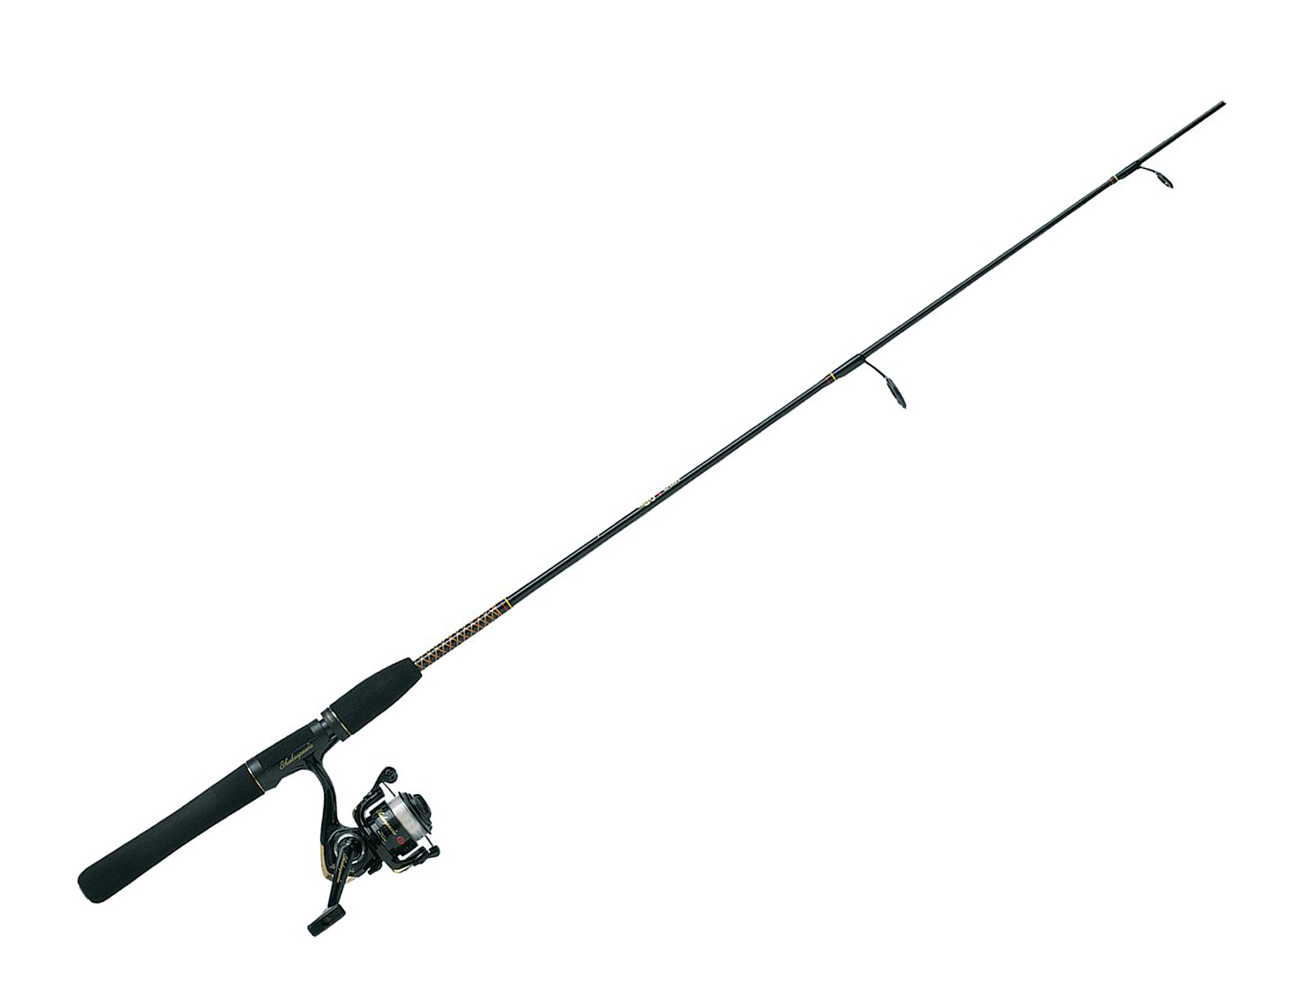 Fishing poles silhouette clipart best for Best fishing poles